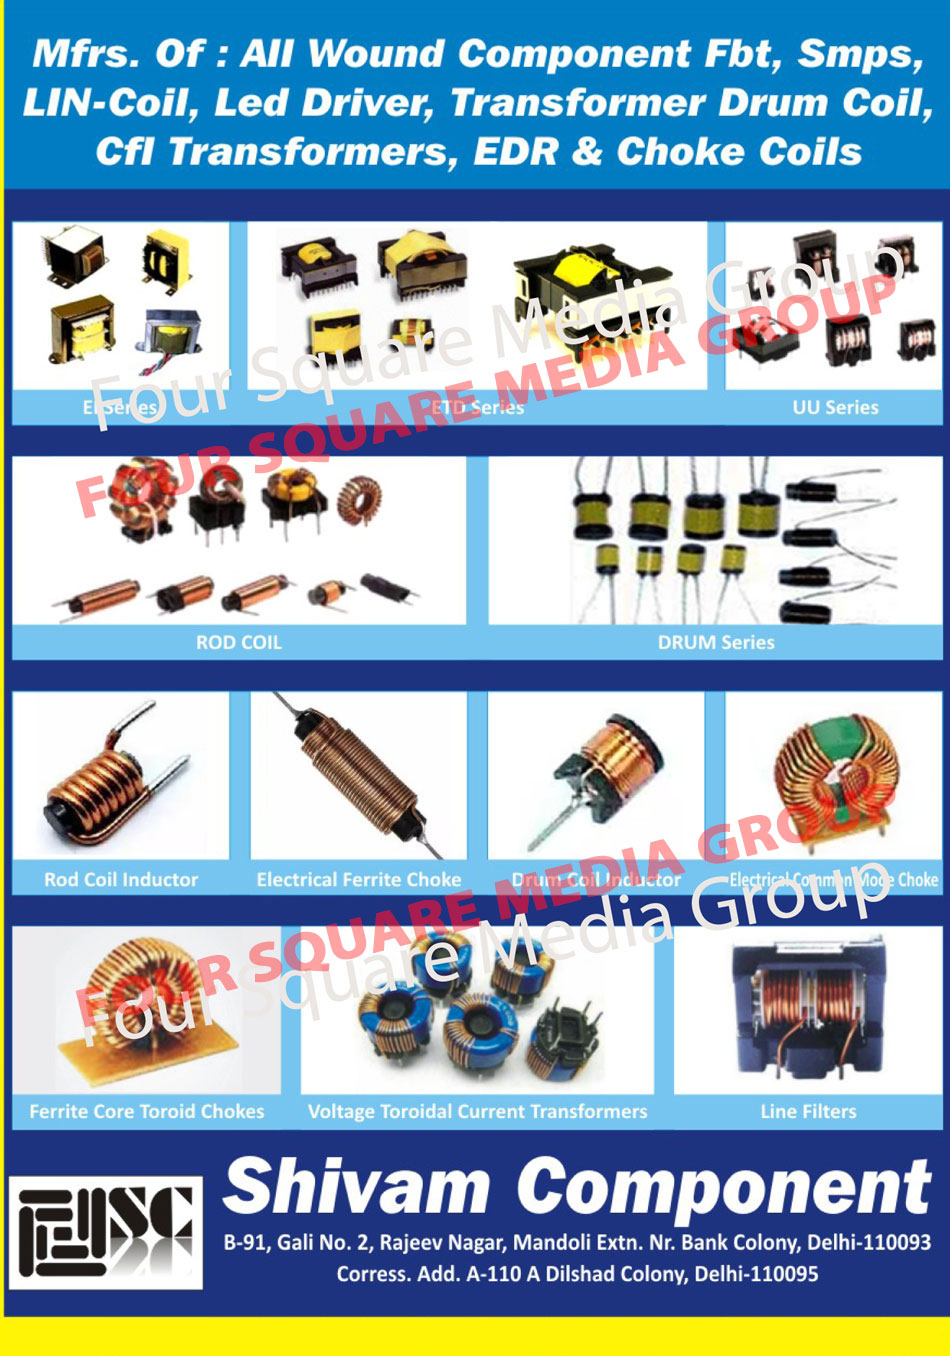 Wound Components, FBT, SMPS, LIN Coils, Led Drivers, Transformer Drum Coils, CFL Transformers, EDR, Choke Coils, EI Series Transformers, ETD Series Transformers, UU Series Transformer, ROD Coil Transformer, Drum Series Transformer, Rod Coil Inductors, Electrical Ferrite Choke, Drum Coil Inductor, Electrical Common Mode Choke, Ferrite Core Toroid Chokes, Voltage Toroidal Current Transformer, Line Filters